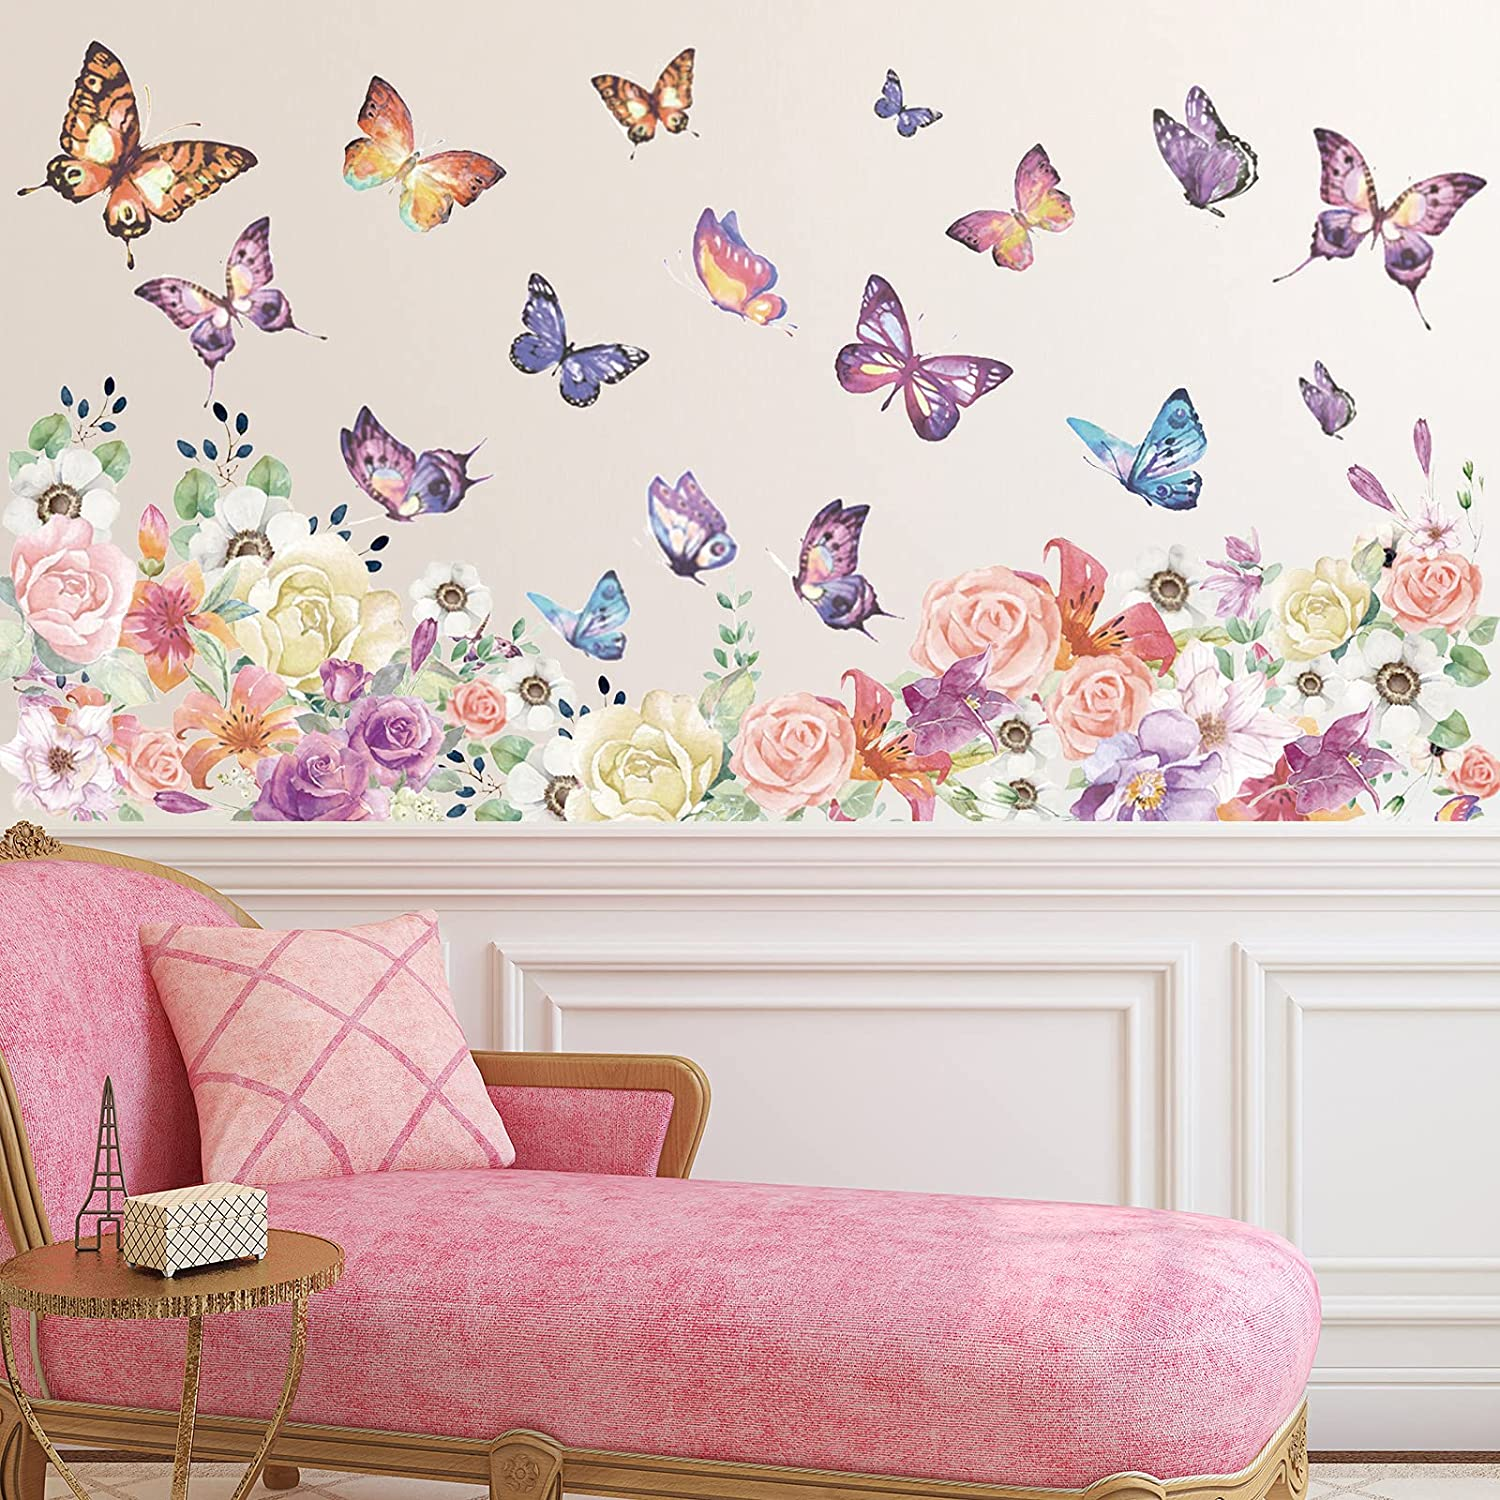 59 Pieces Flowers Butterfly Wall Decals Removable DIY Floral Butterfly Art Wall Stickers Garden Bouquet Wall Stickers for Bedroom Living Room TV Wall Home Decor